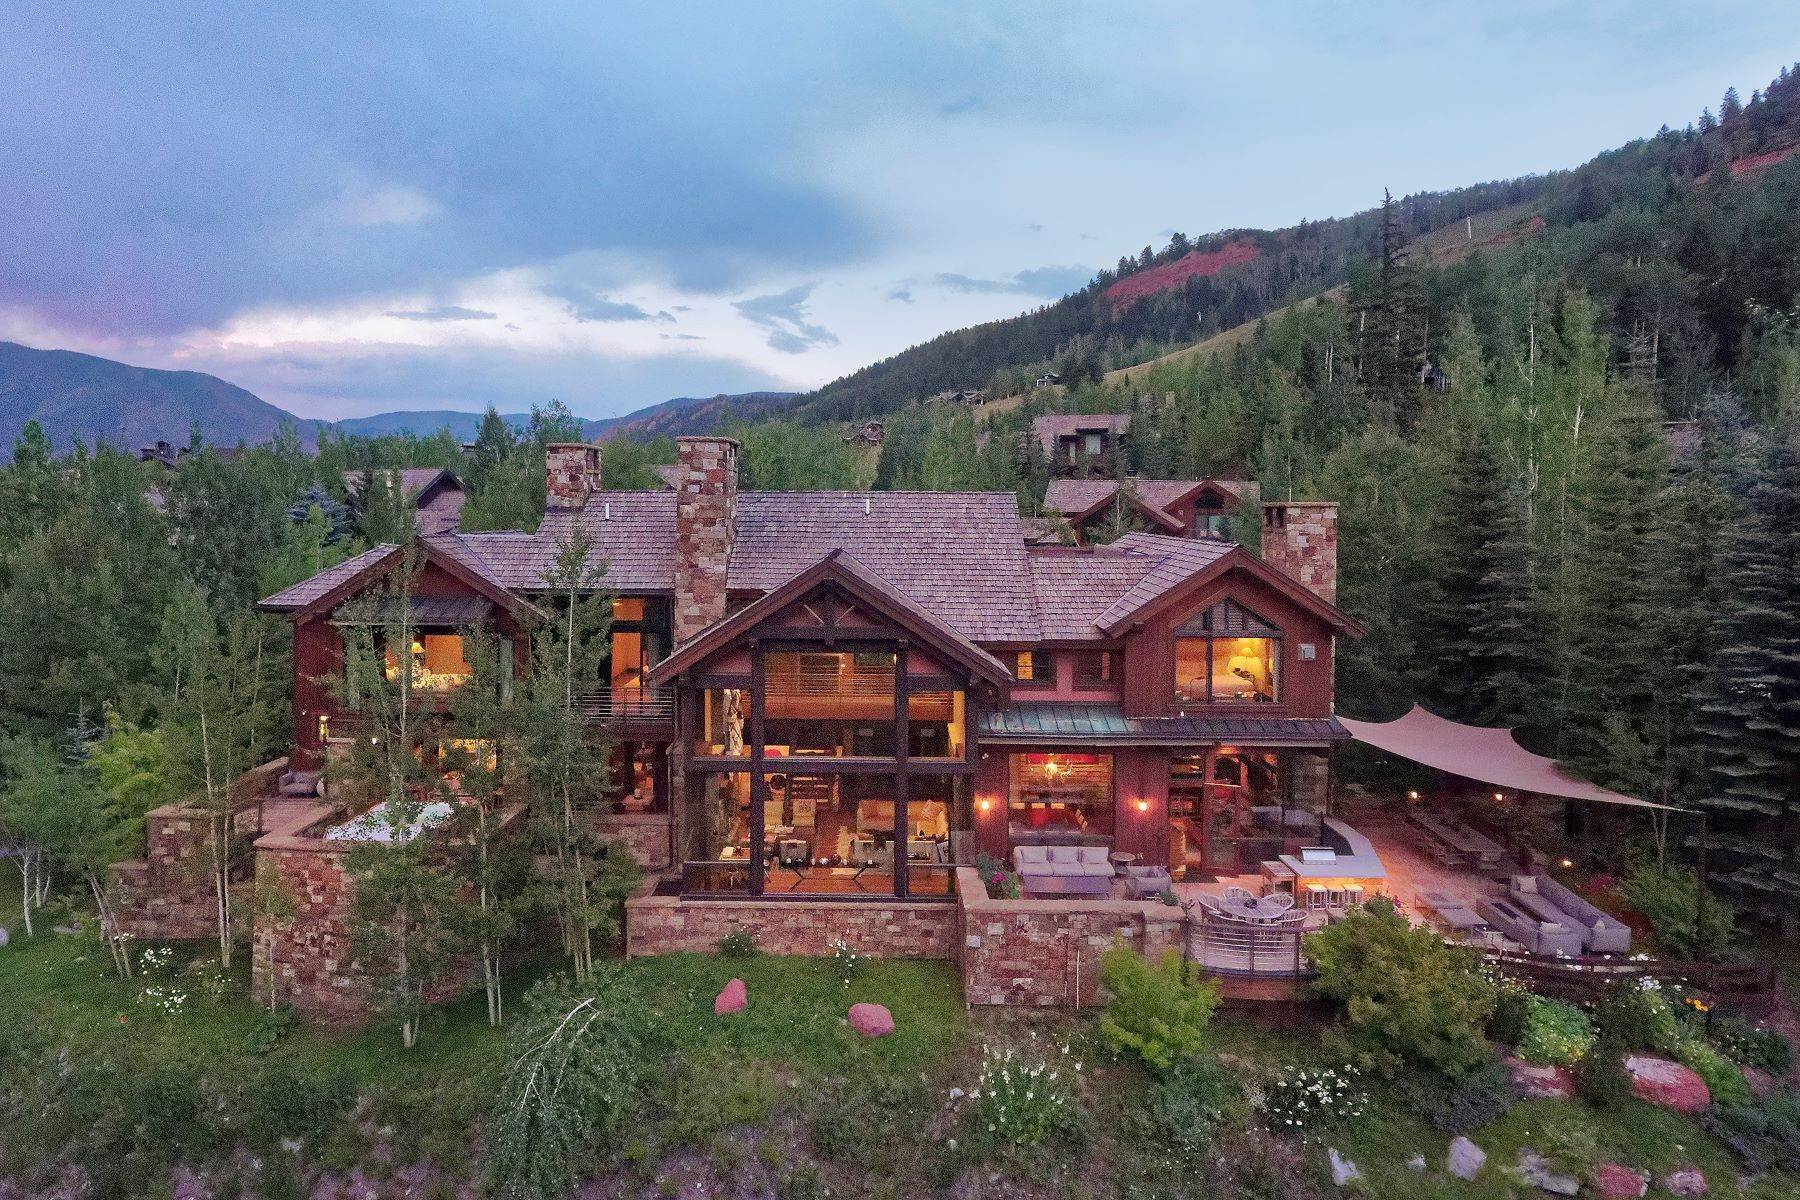 Single Family Homes for Active at In the Heart of Aspen Highlands 105 Exhibition Lane Aspen, Colorado 81611 United States